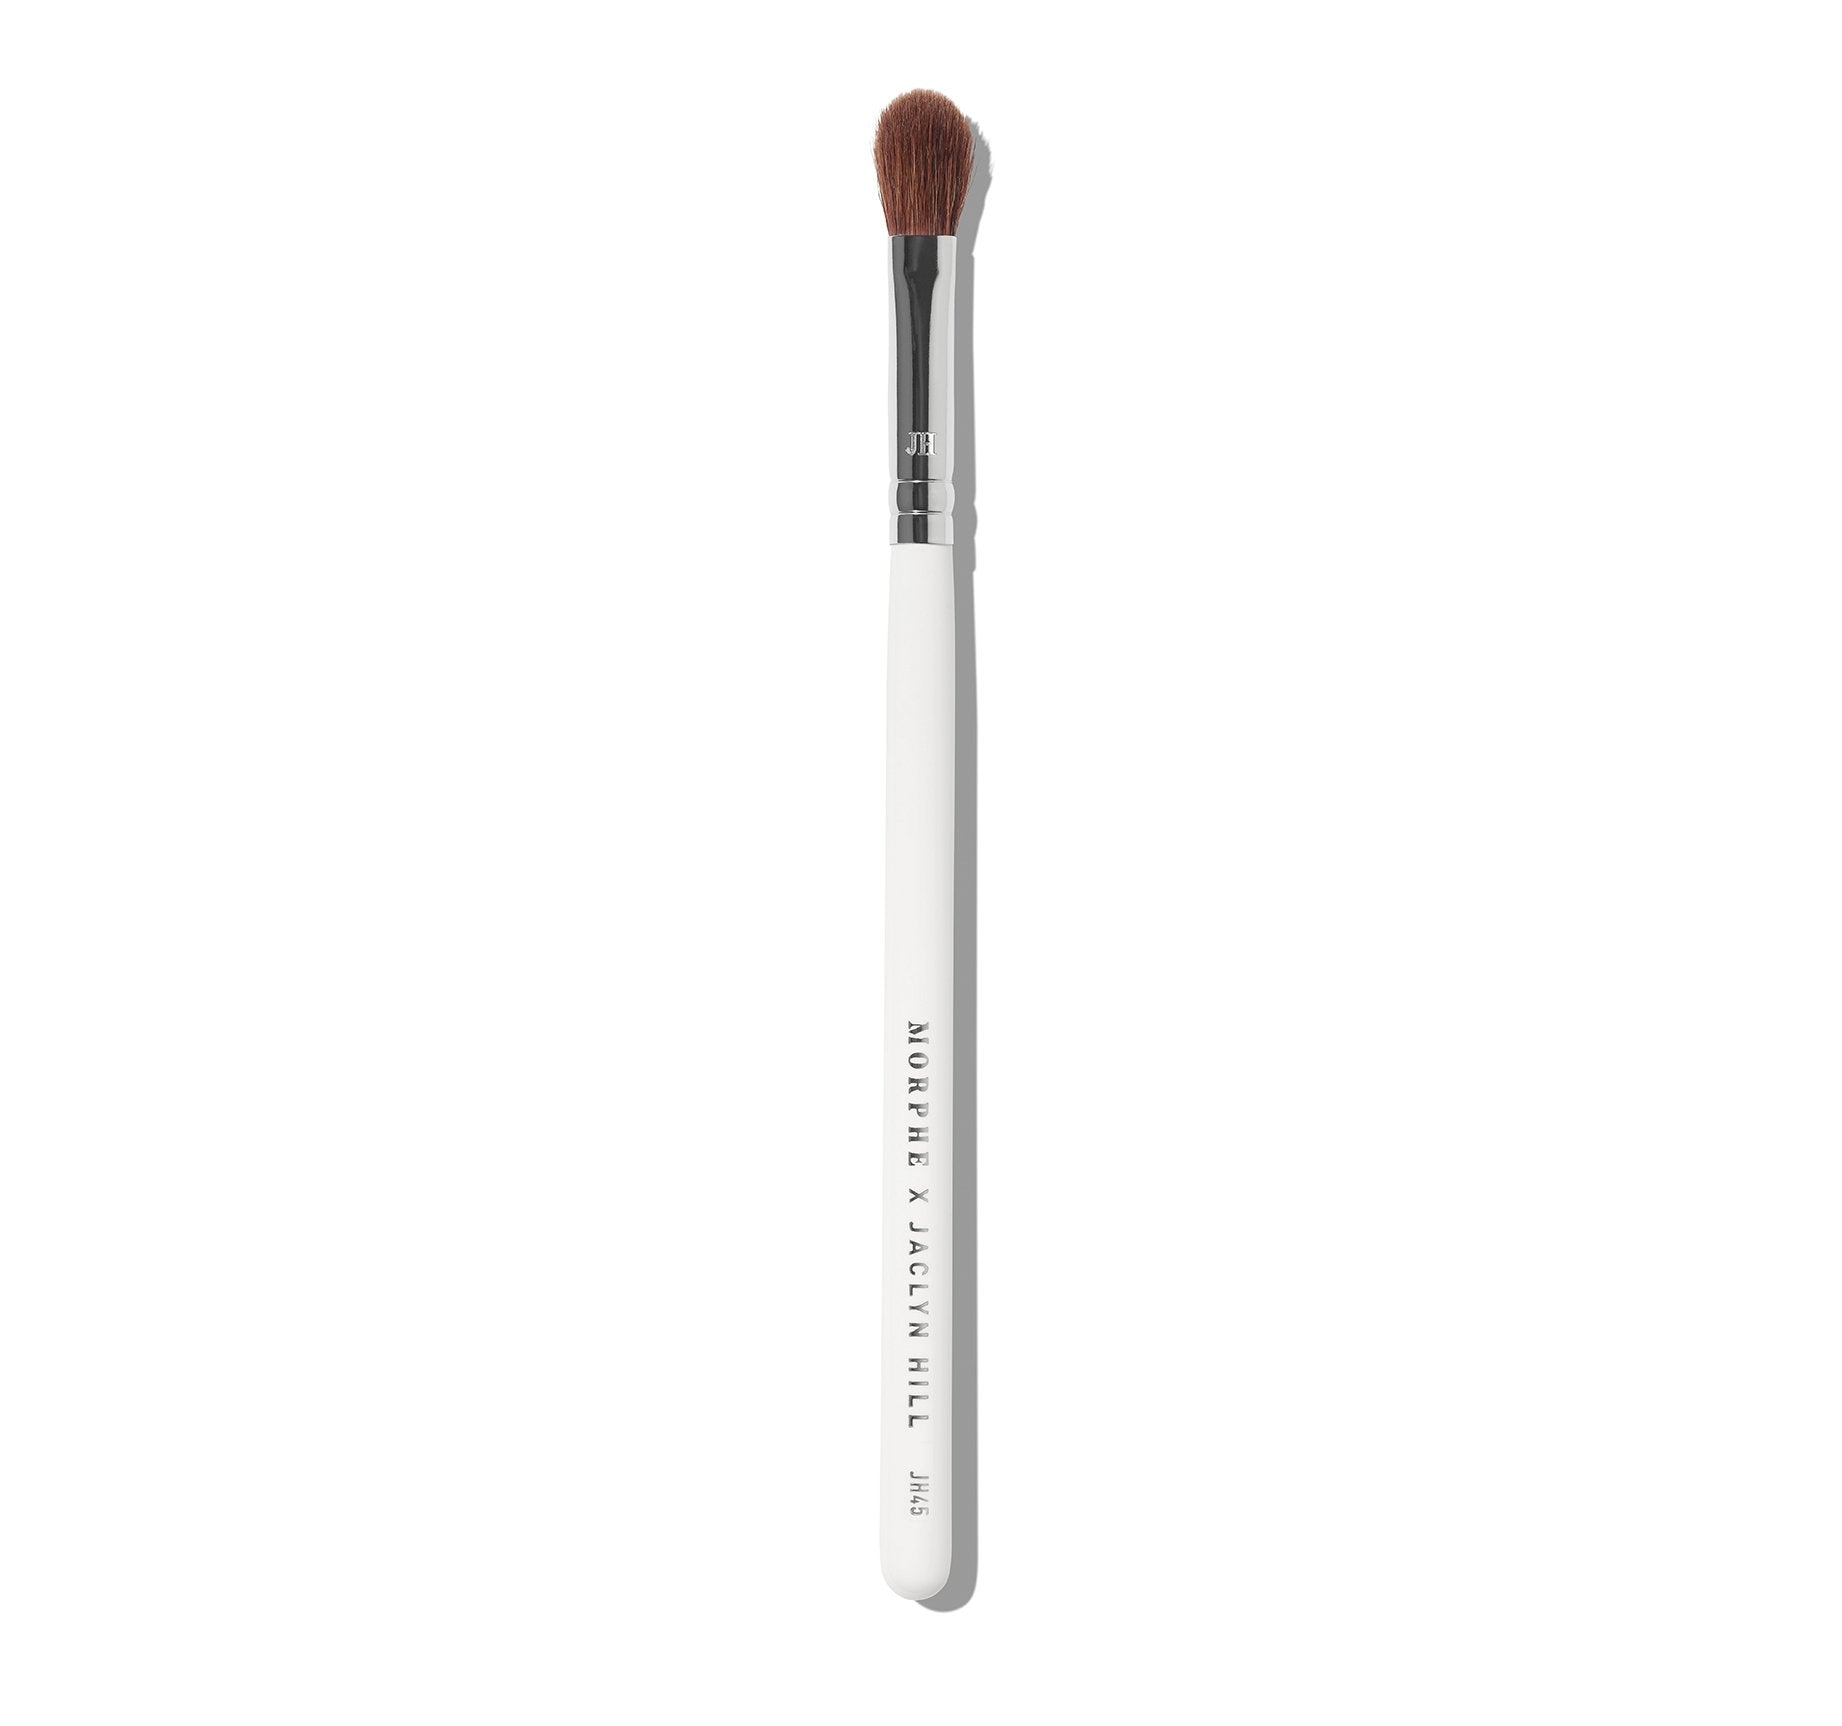 MORPHE X JACLYN HILL JH45 BLENDING BOSS BRUSH, view larger image